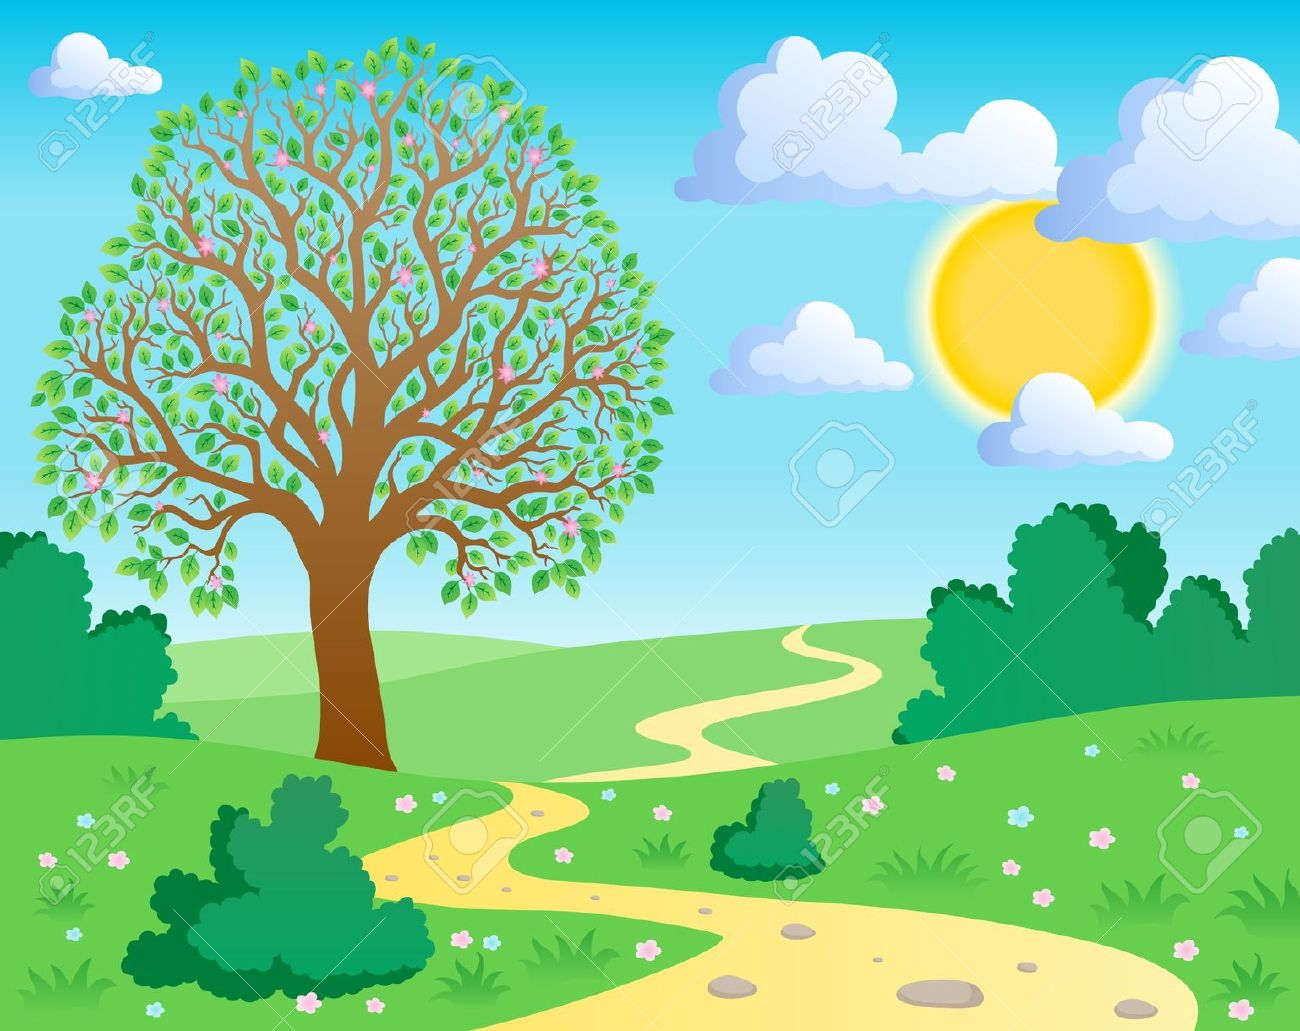 Outdoor clipart trail Scenery Cliparts Zone clipart Nature